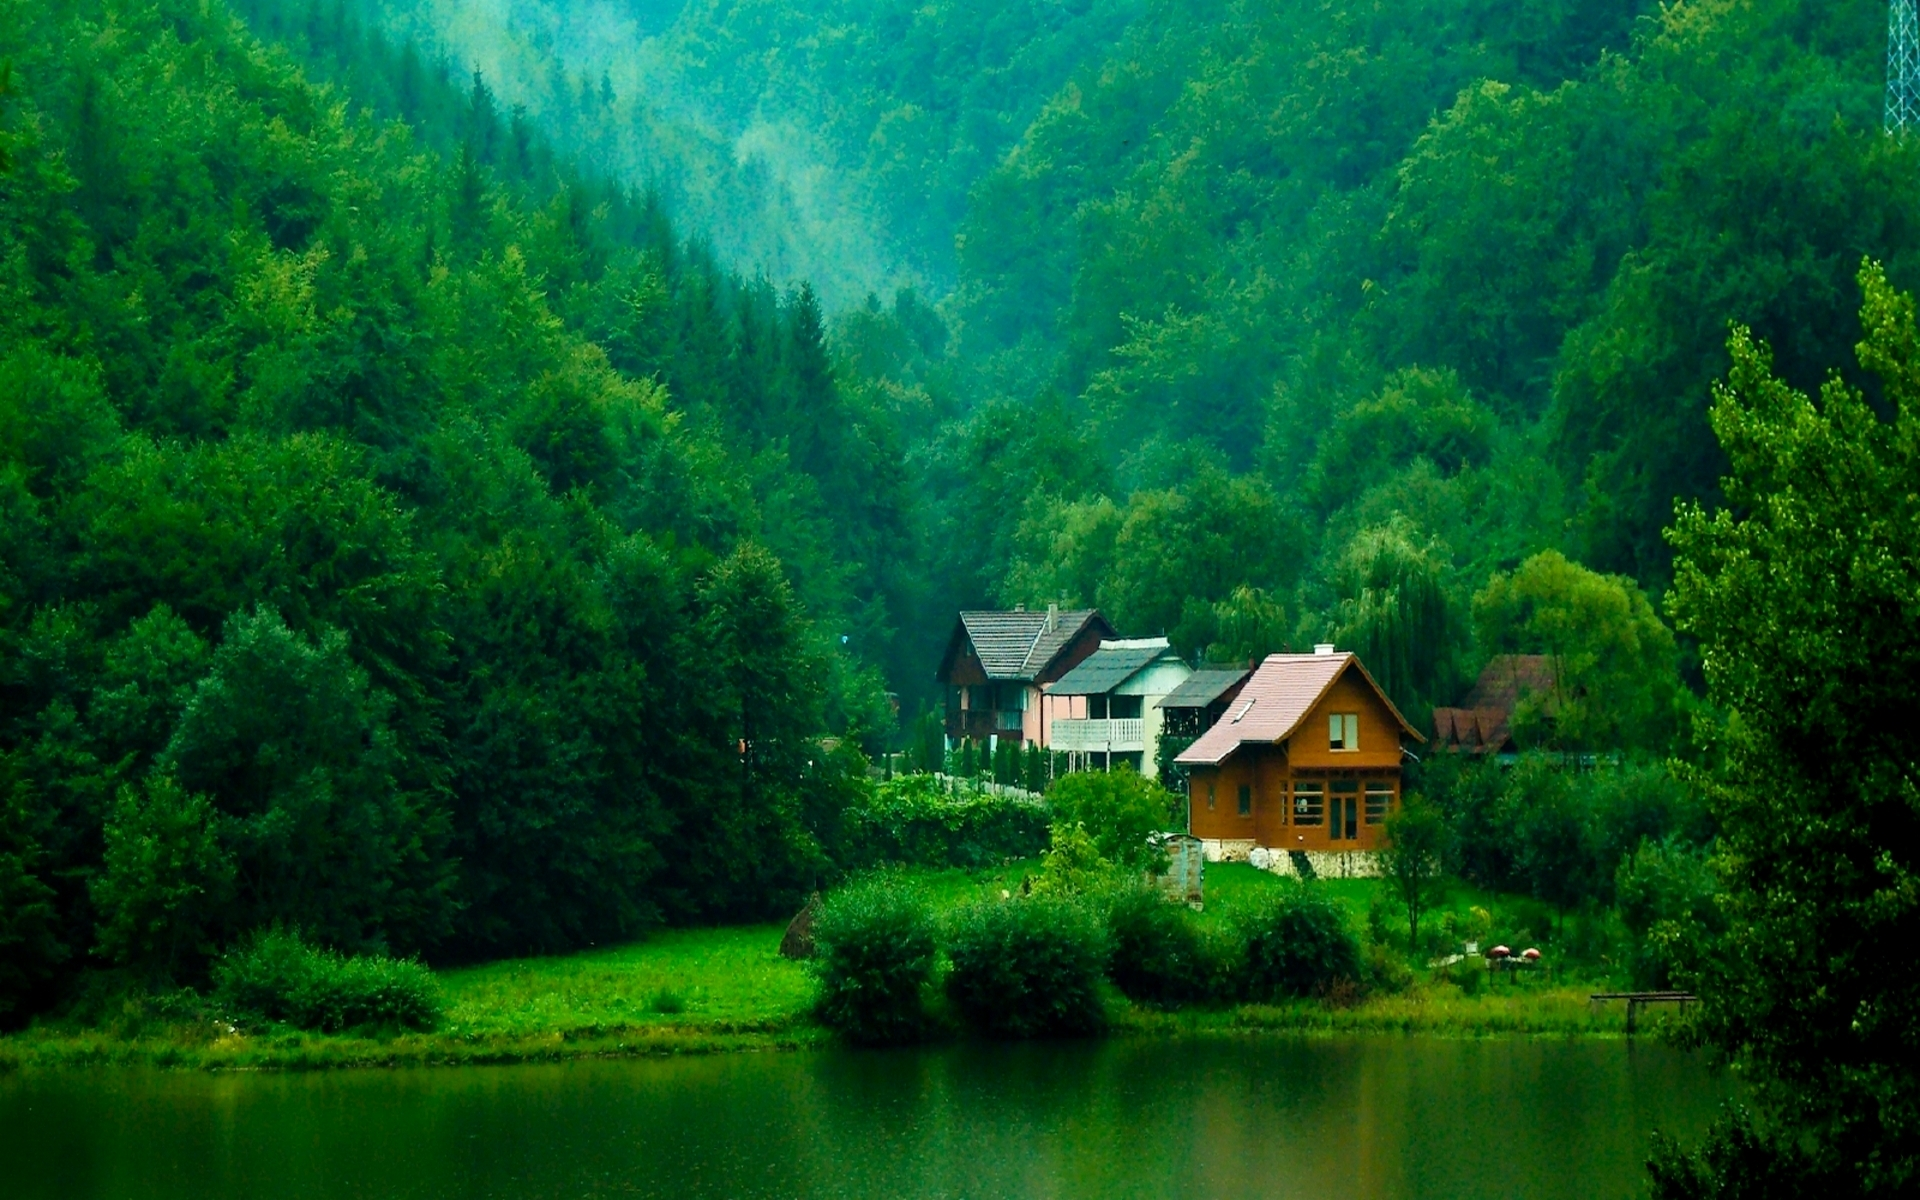 Beautiful house hd wallpapers wallpapersafari for Pretty wallpapers for home